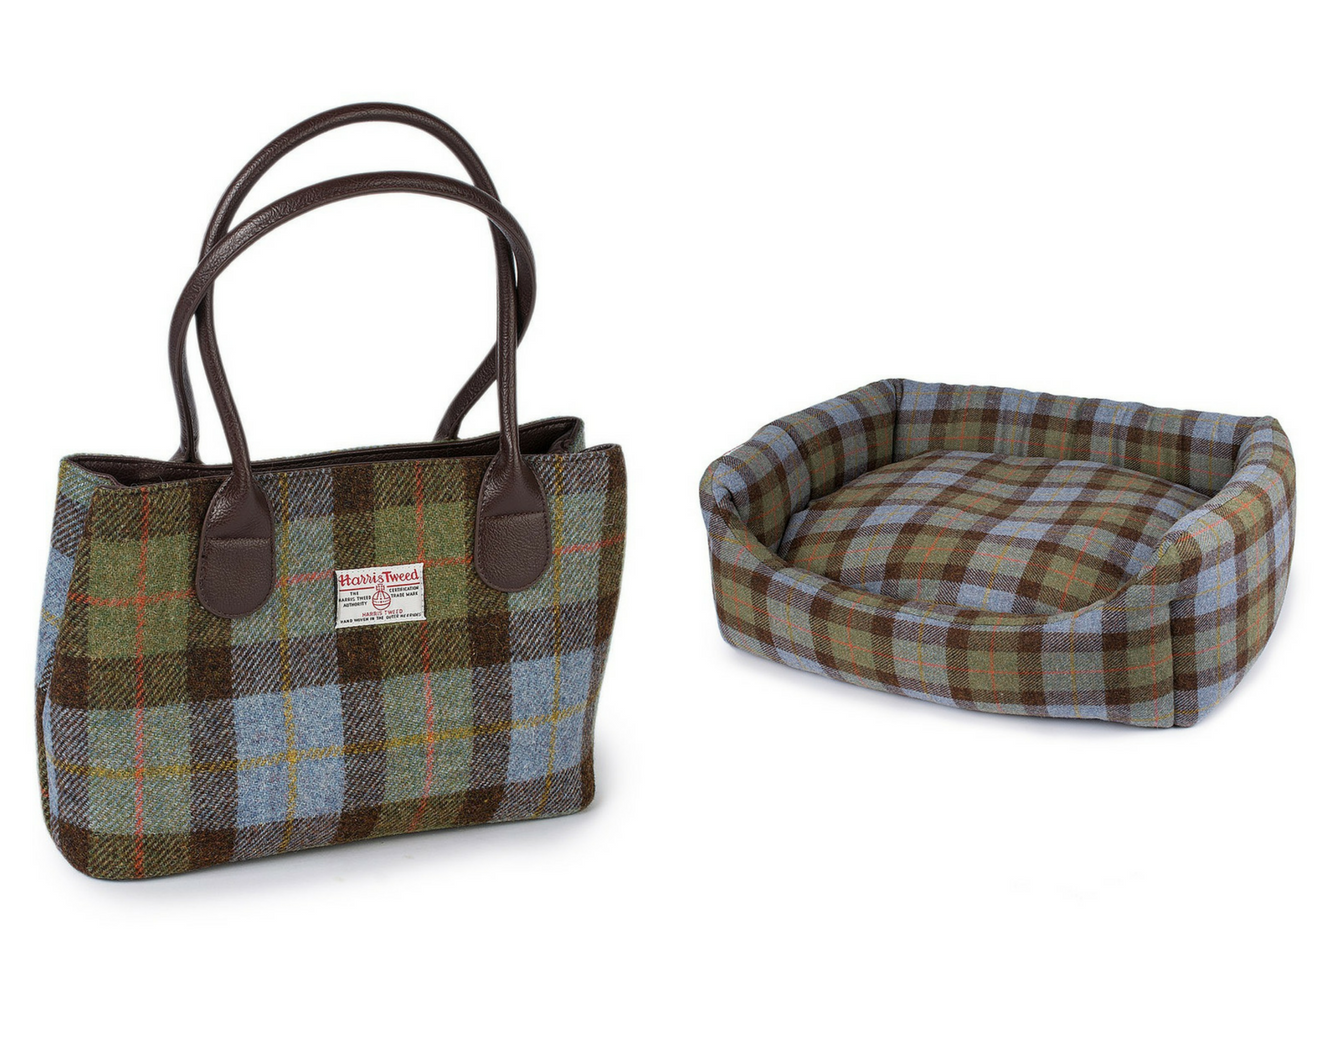 Blue Check Harris Tweed handbag and dogbed House of Bruar